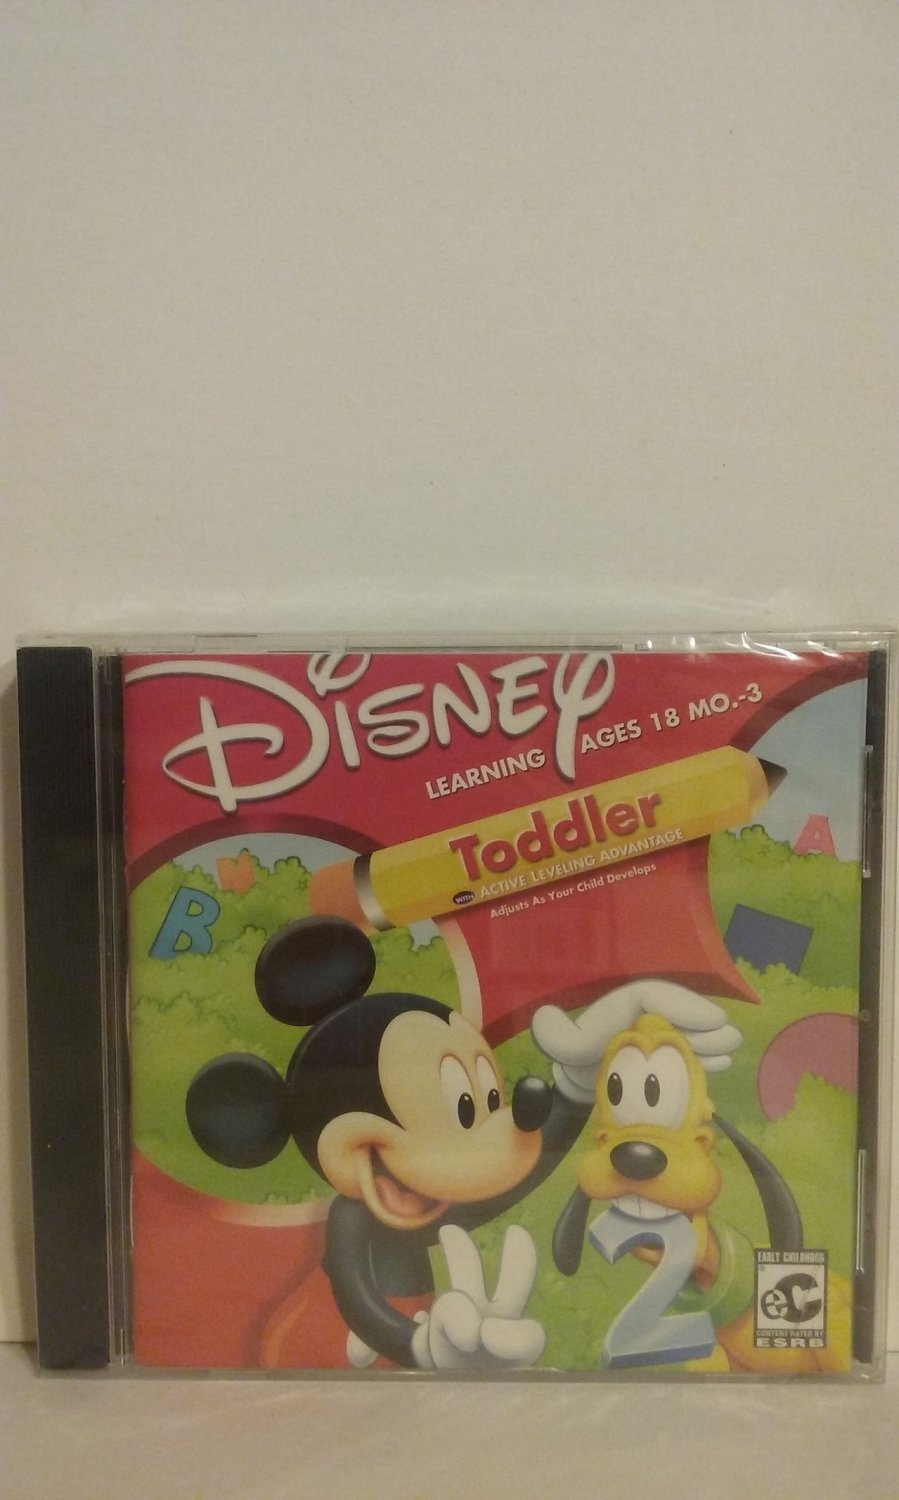 Disney's Mickey Mouse Toddler (PC/Mac)